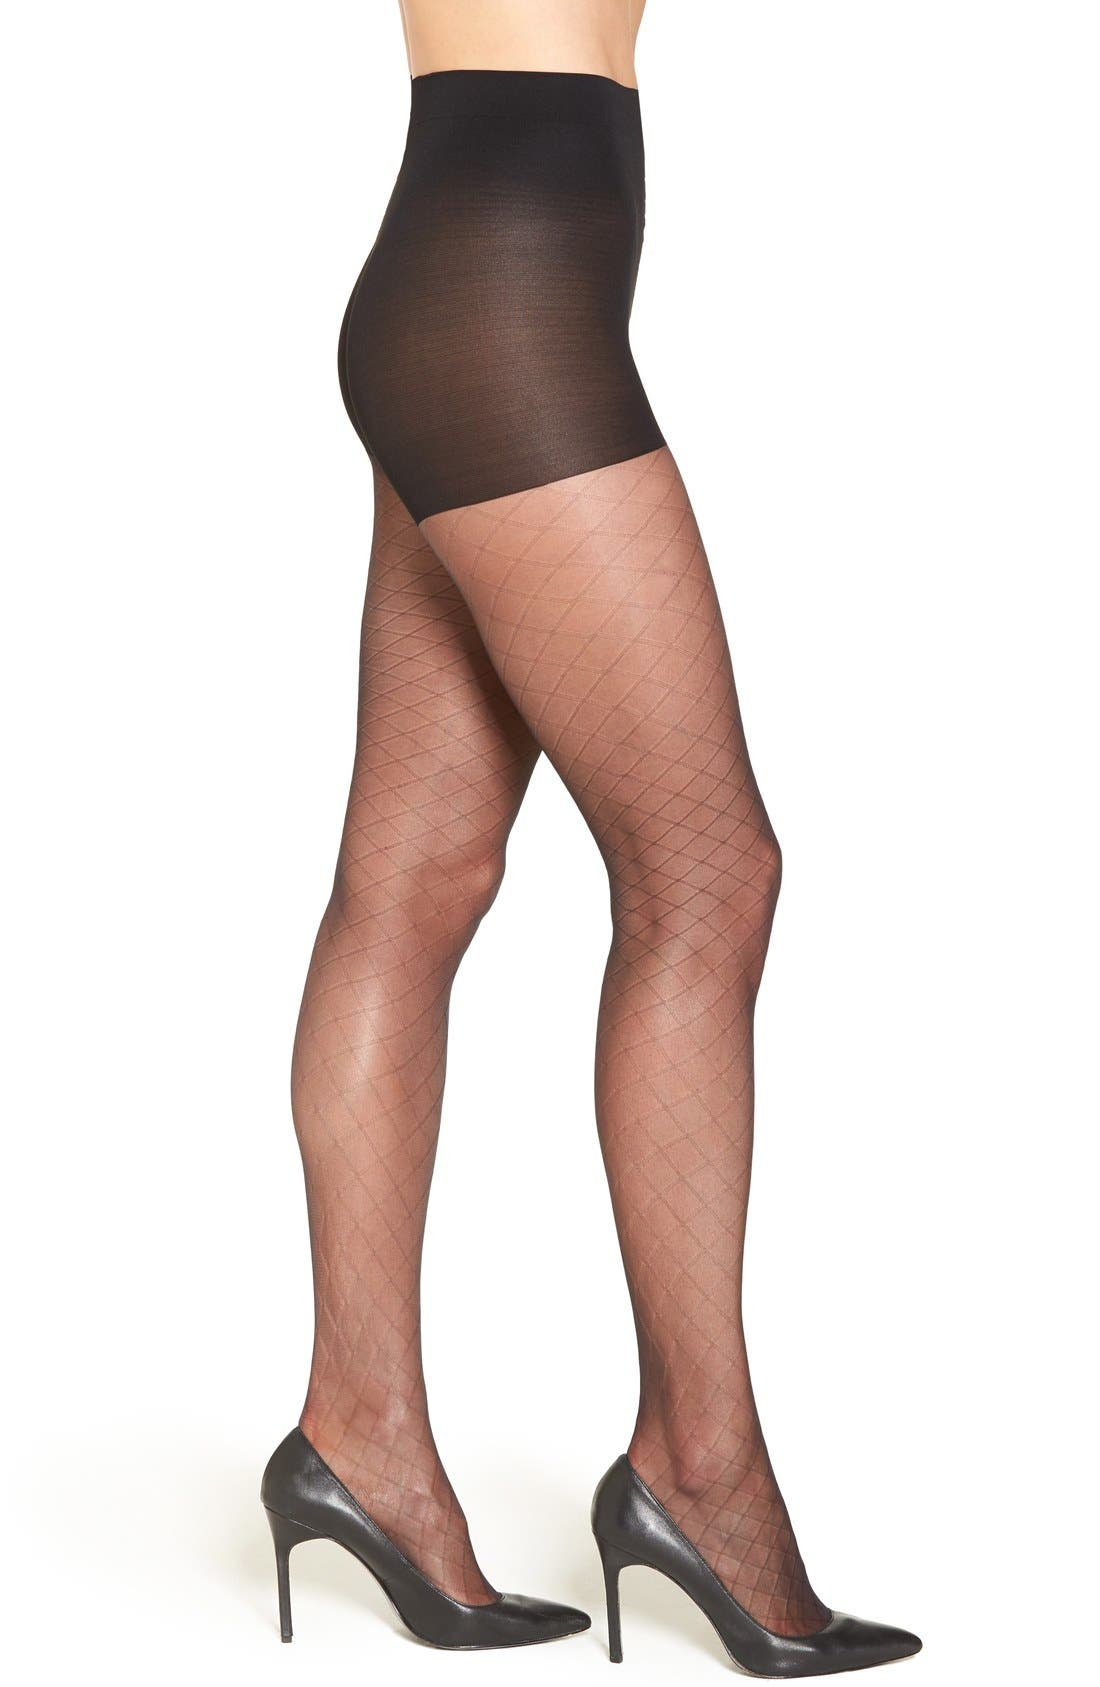 Nordstrom Diamond Knit Sheer Pantyhose